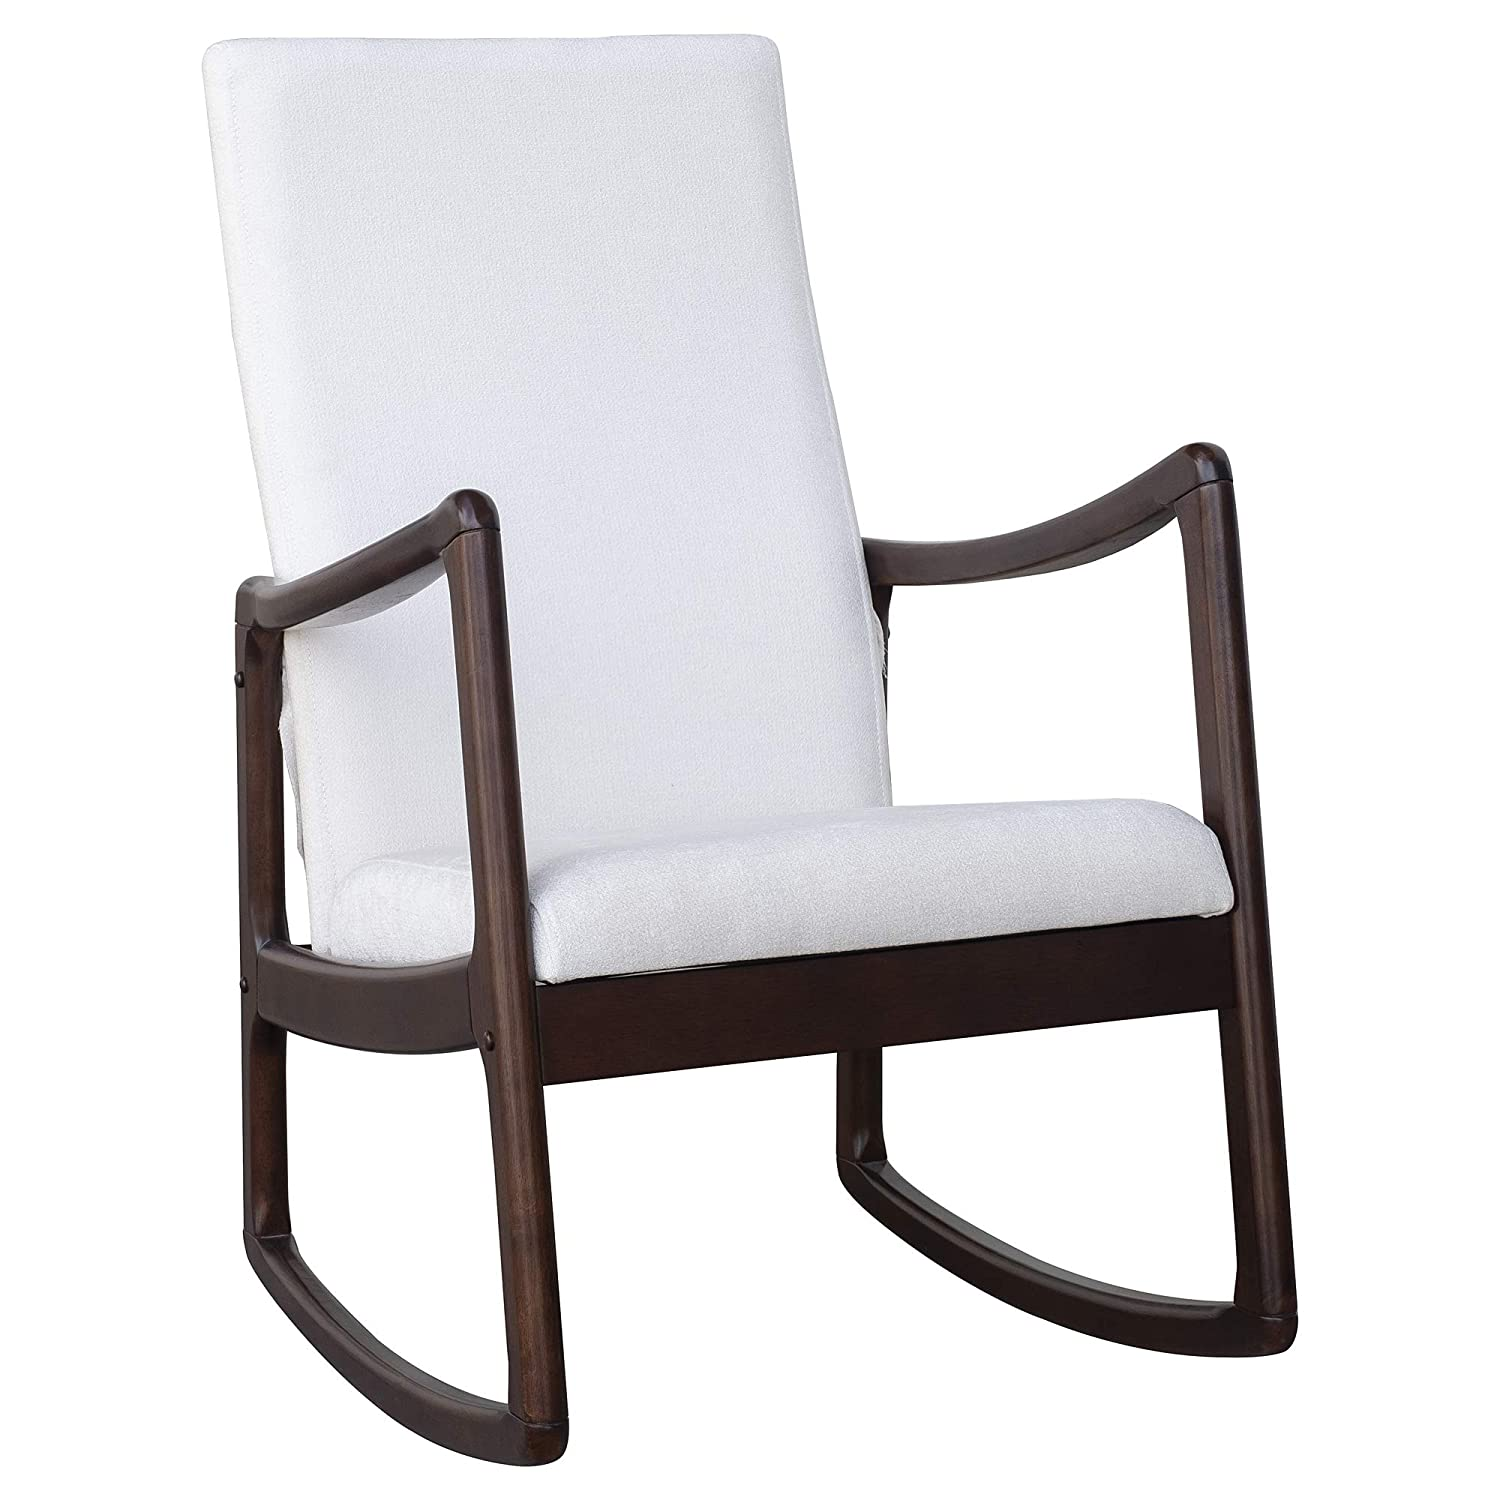 Homcom Modern Wood Rocking Chair Indoor Porch Furniture For Living Room Coffee Brown White With Cushion